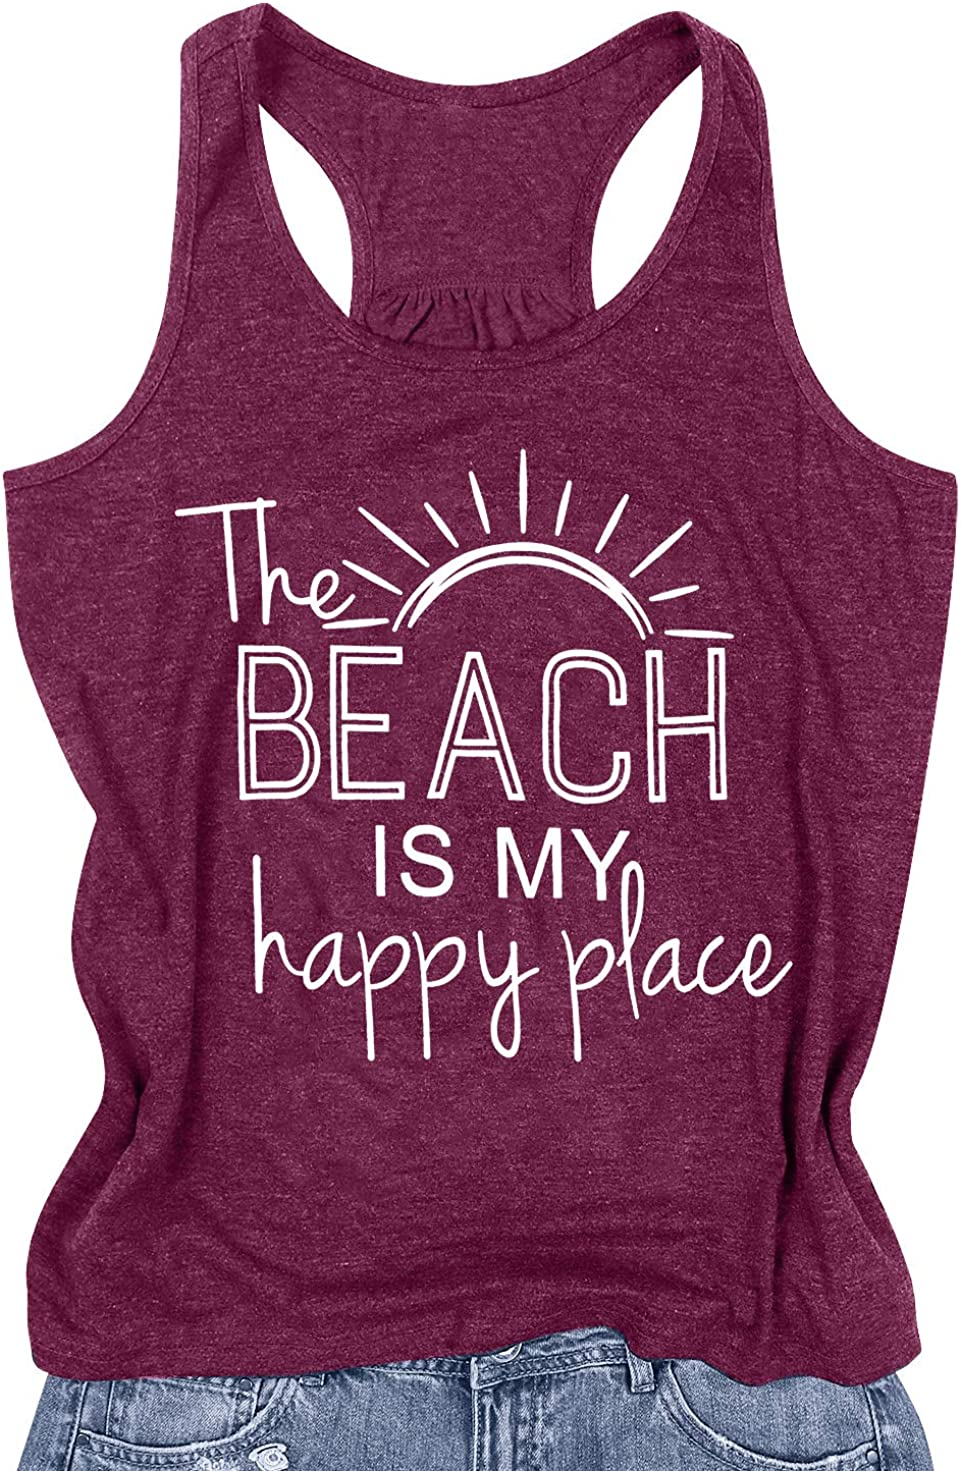 BANGELY The Beach is My Happy Place Tank Tops Women Summer Beach Tank Casual Sleeveless Vacation Shirt Camis